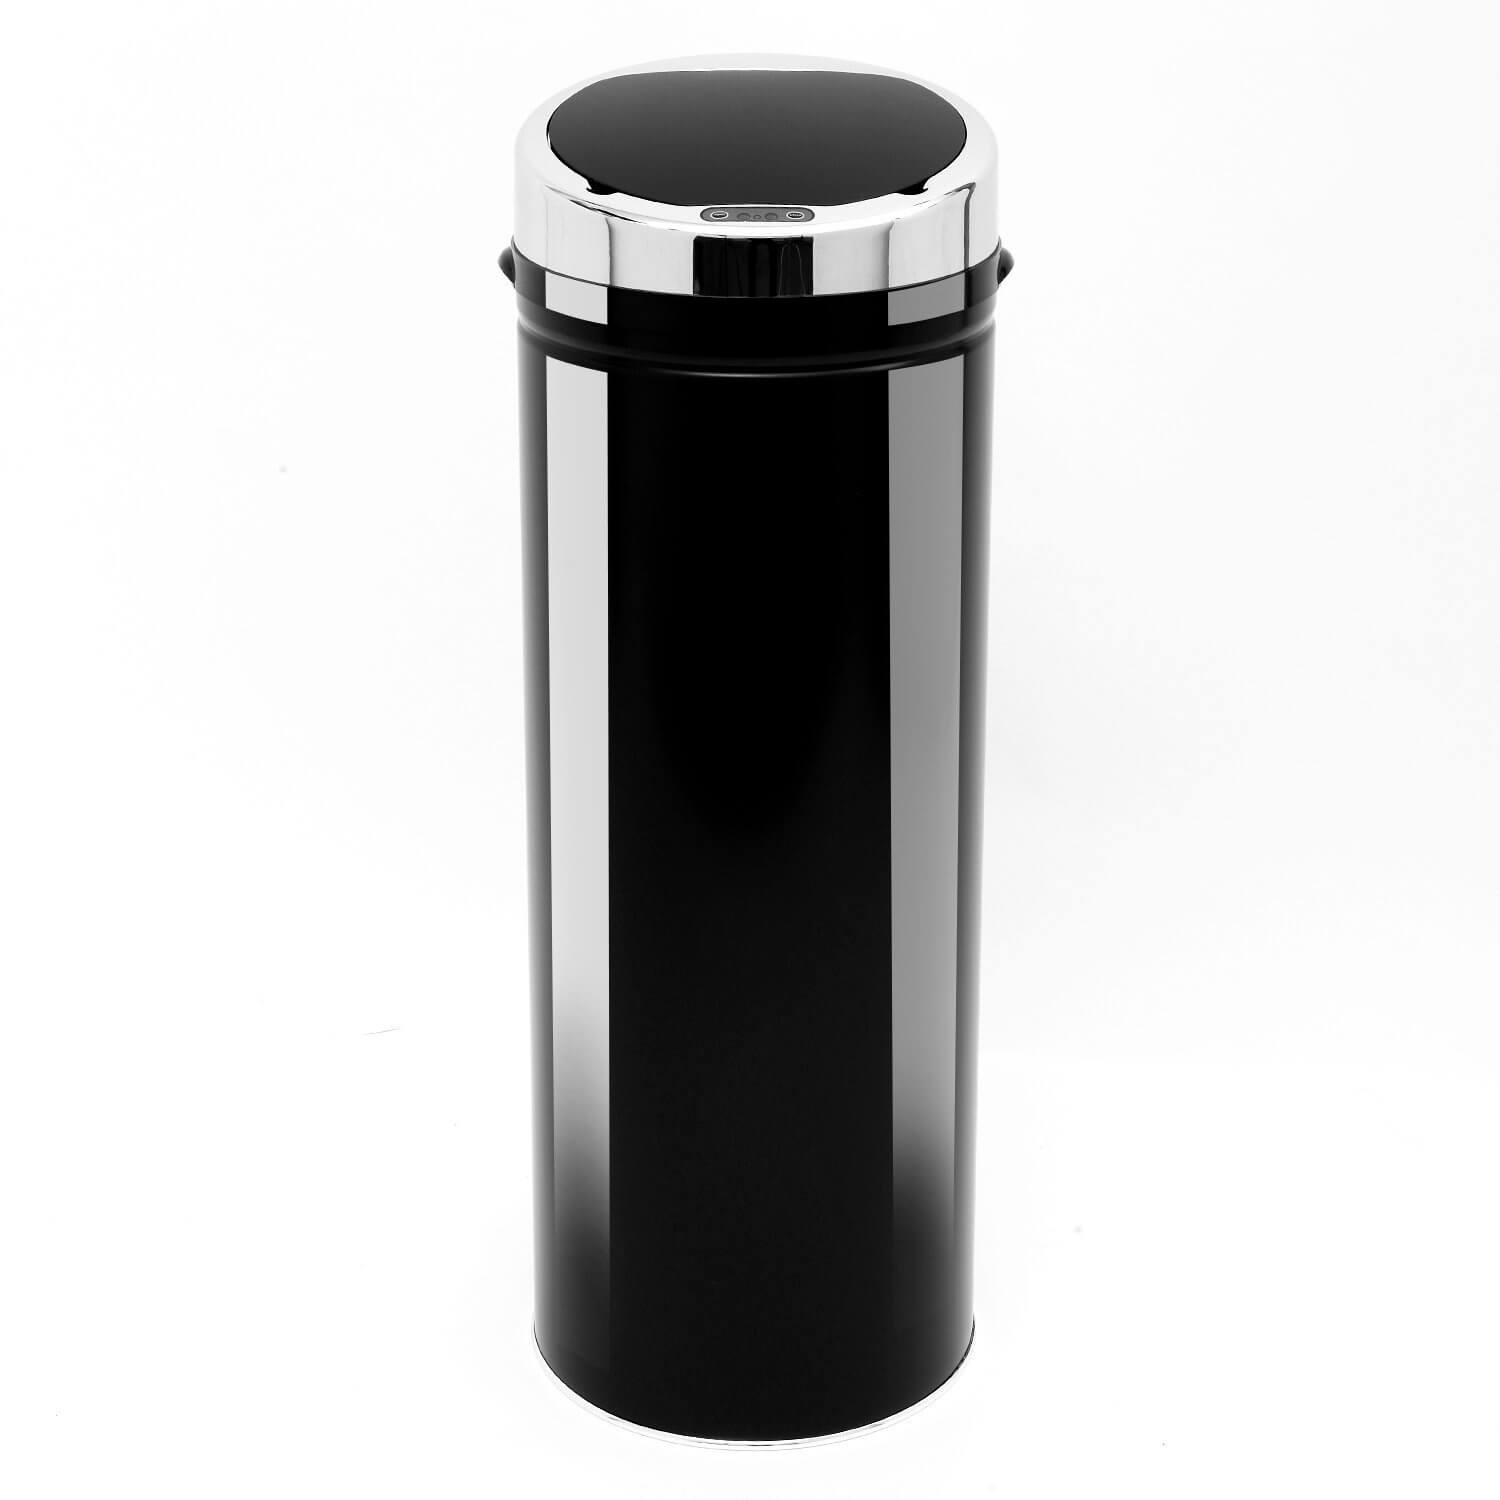 Homcom 50L LUXURY Automatic Sensor Dustbin Kitchen